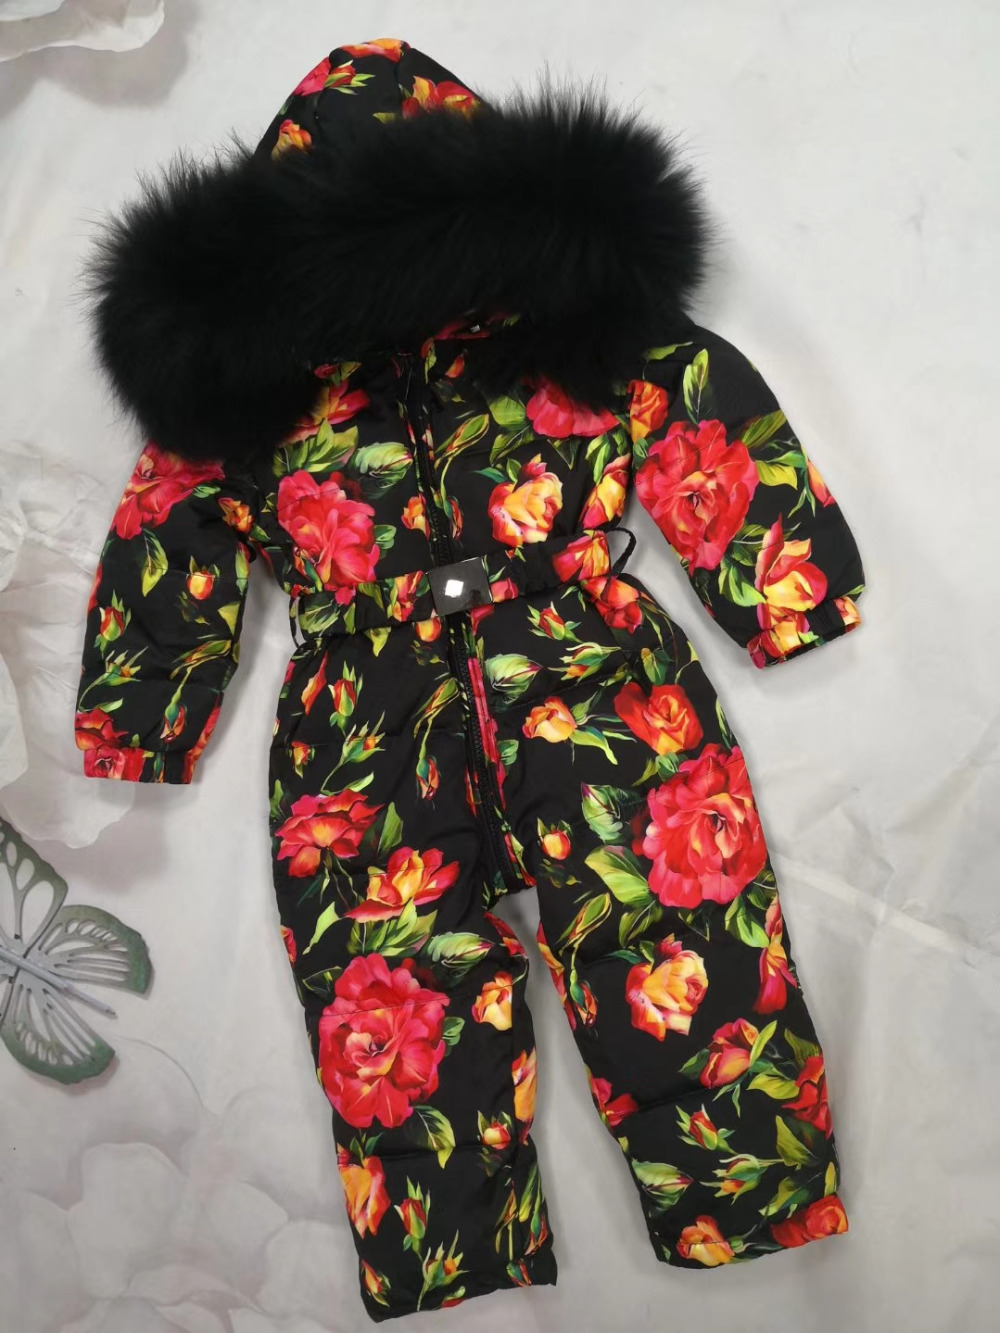 2018 Winter down jacket Baby duck down suit outerwear Fur Hooded childrens Snowsuit down coats Child jumpsuit romper ski suit2018 Winter down jacket Baby duck down suit outerwear Fur Hooded childrens Snowsuit down coats Child jumpsuit romper ski suit